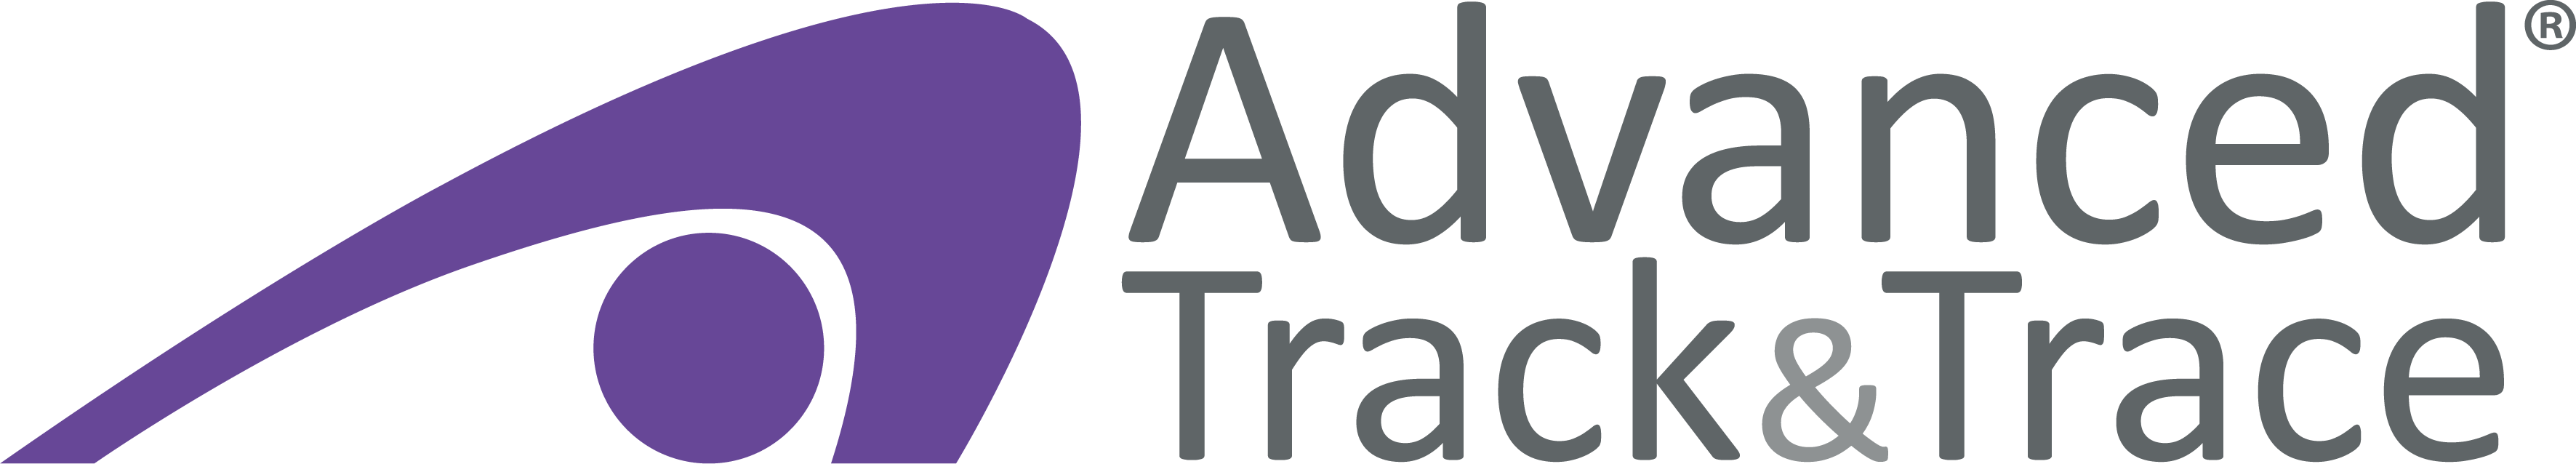 ATT - Advanced Track and Trace